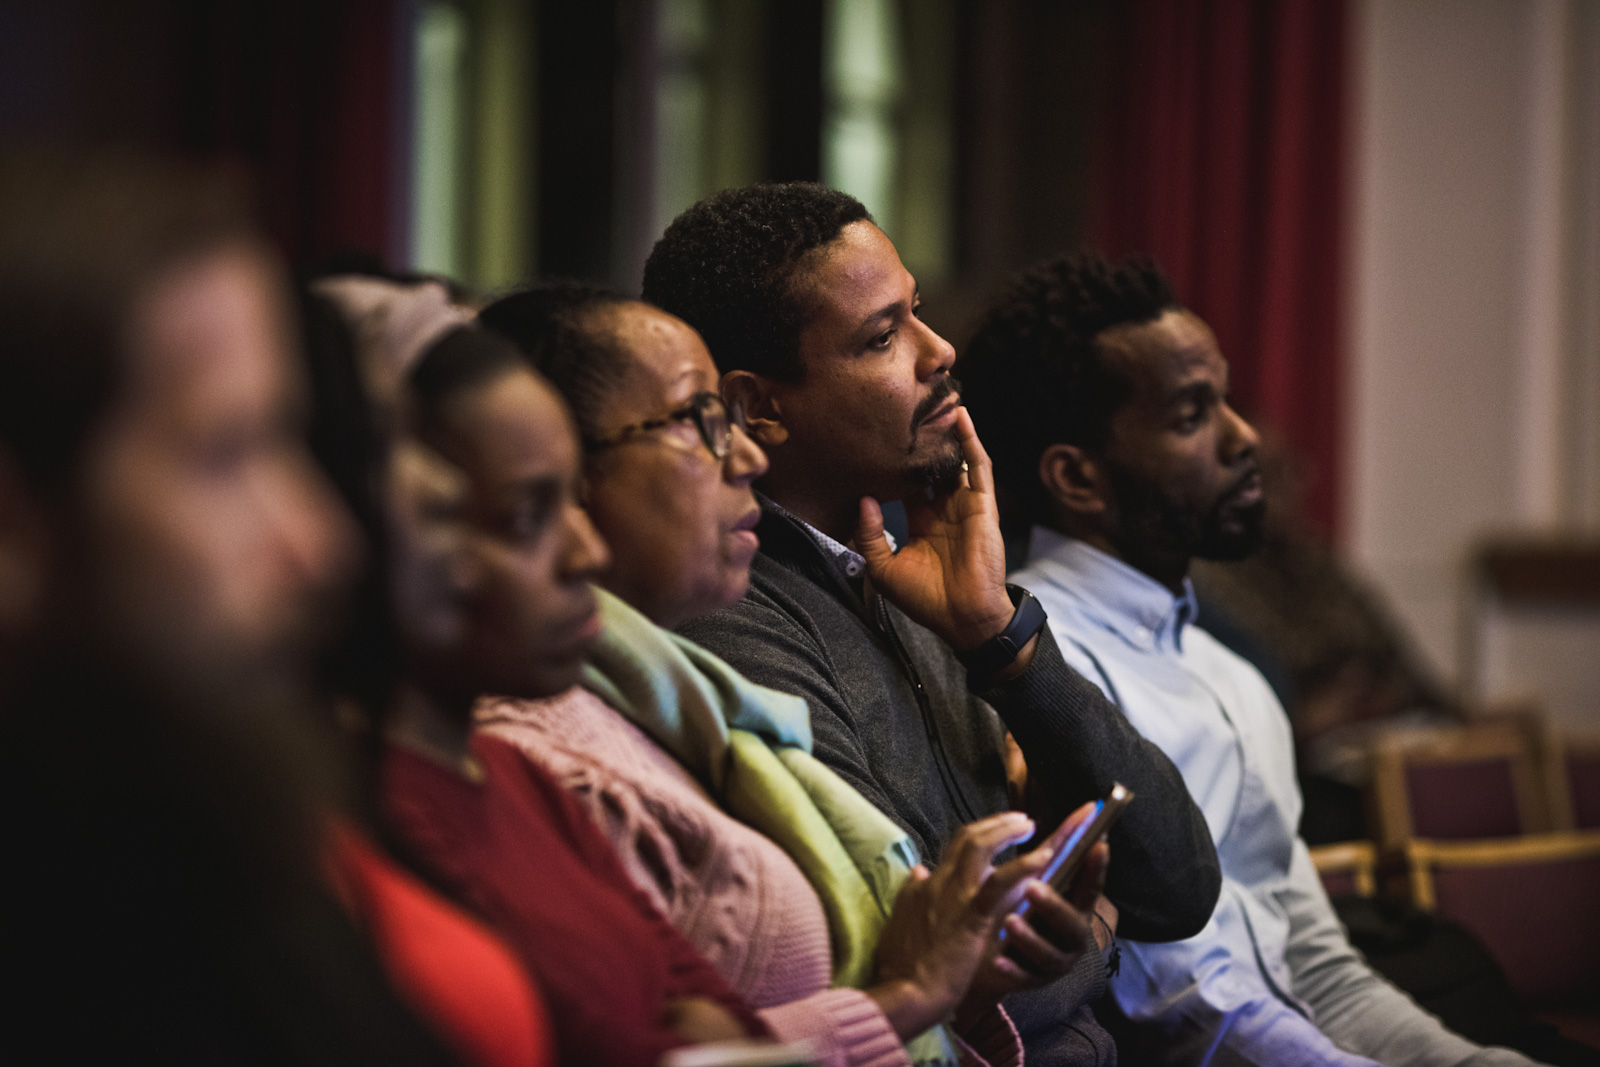 Diversity Lecture Nov 2019 audience listening